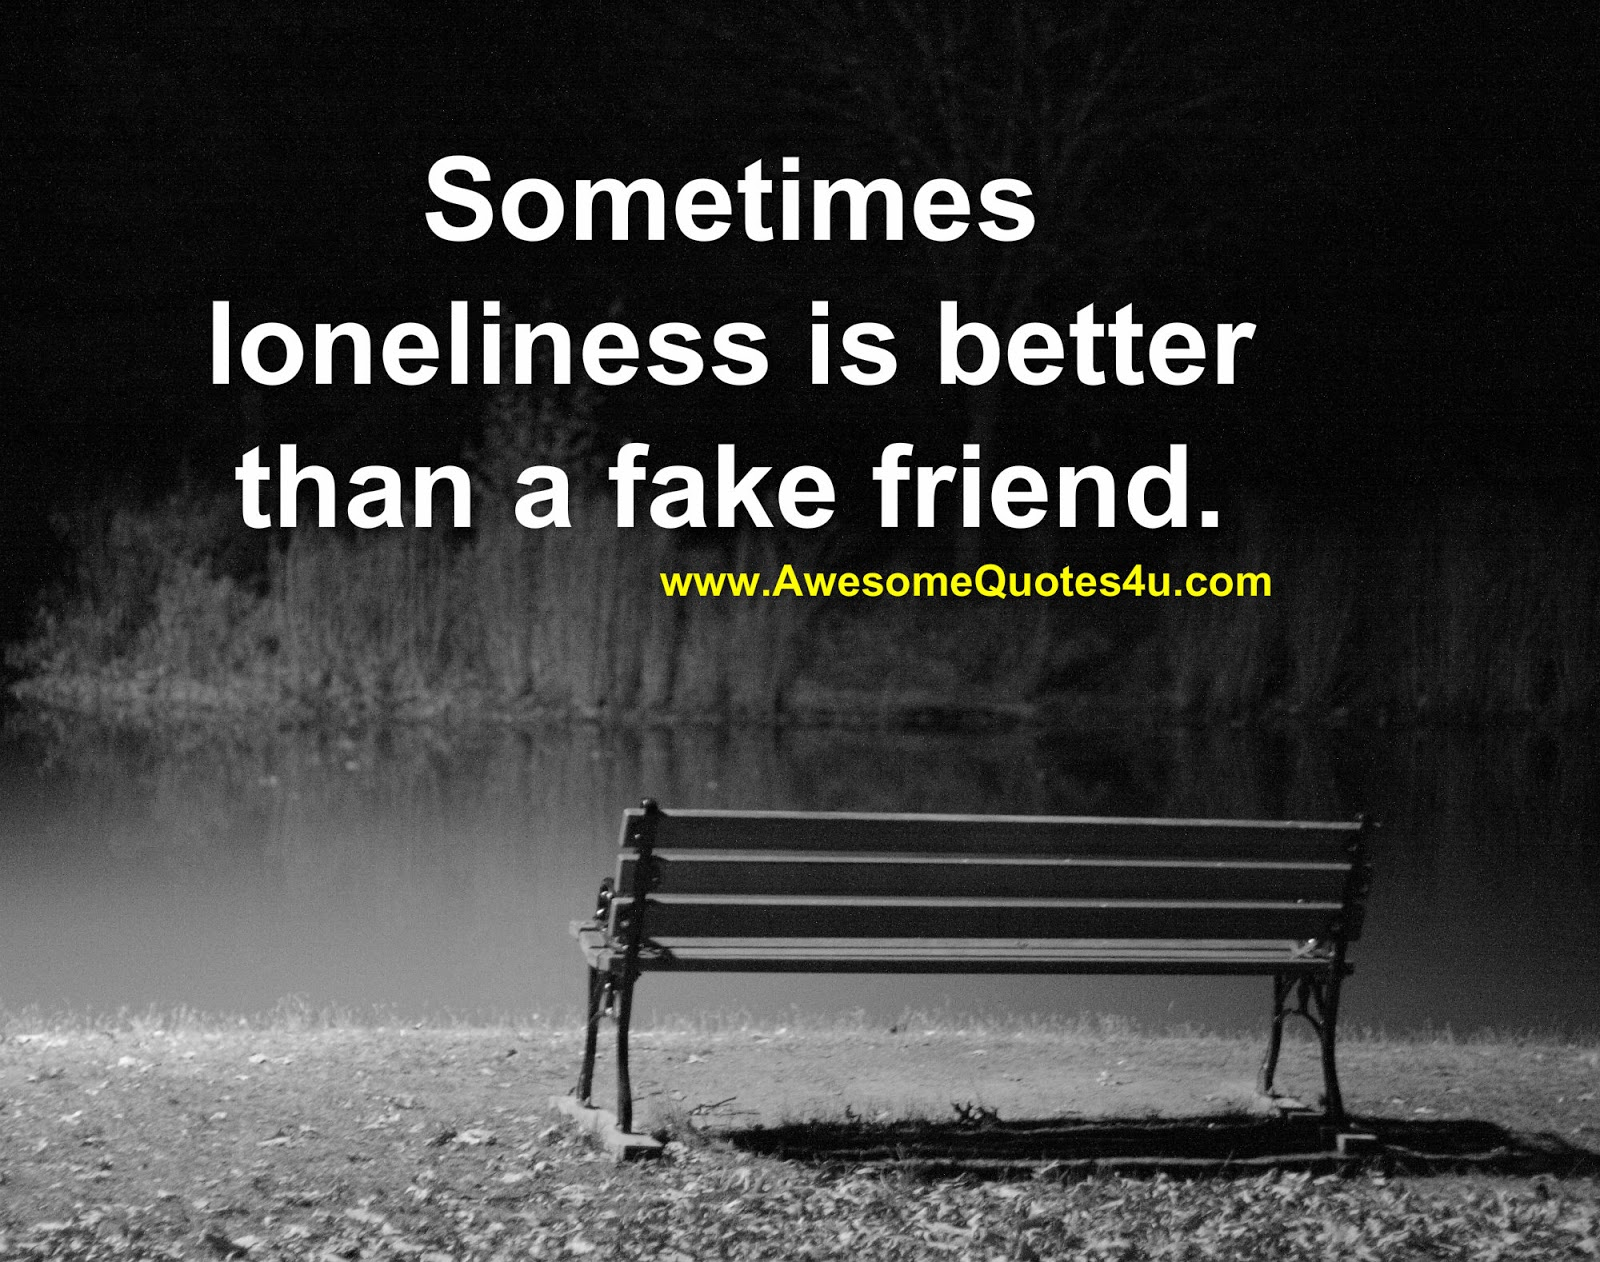 awesome quotes sometimes loneliness is better than a fake